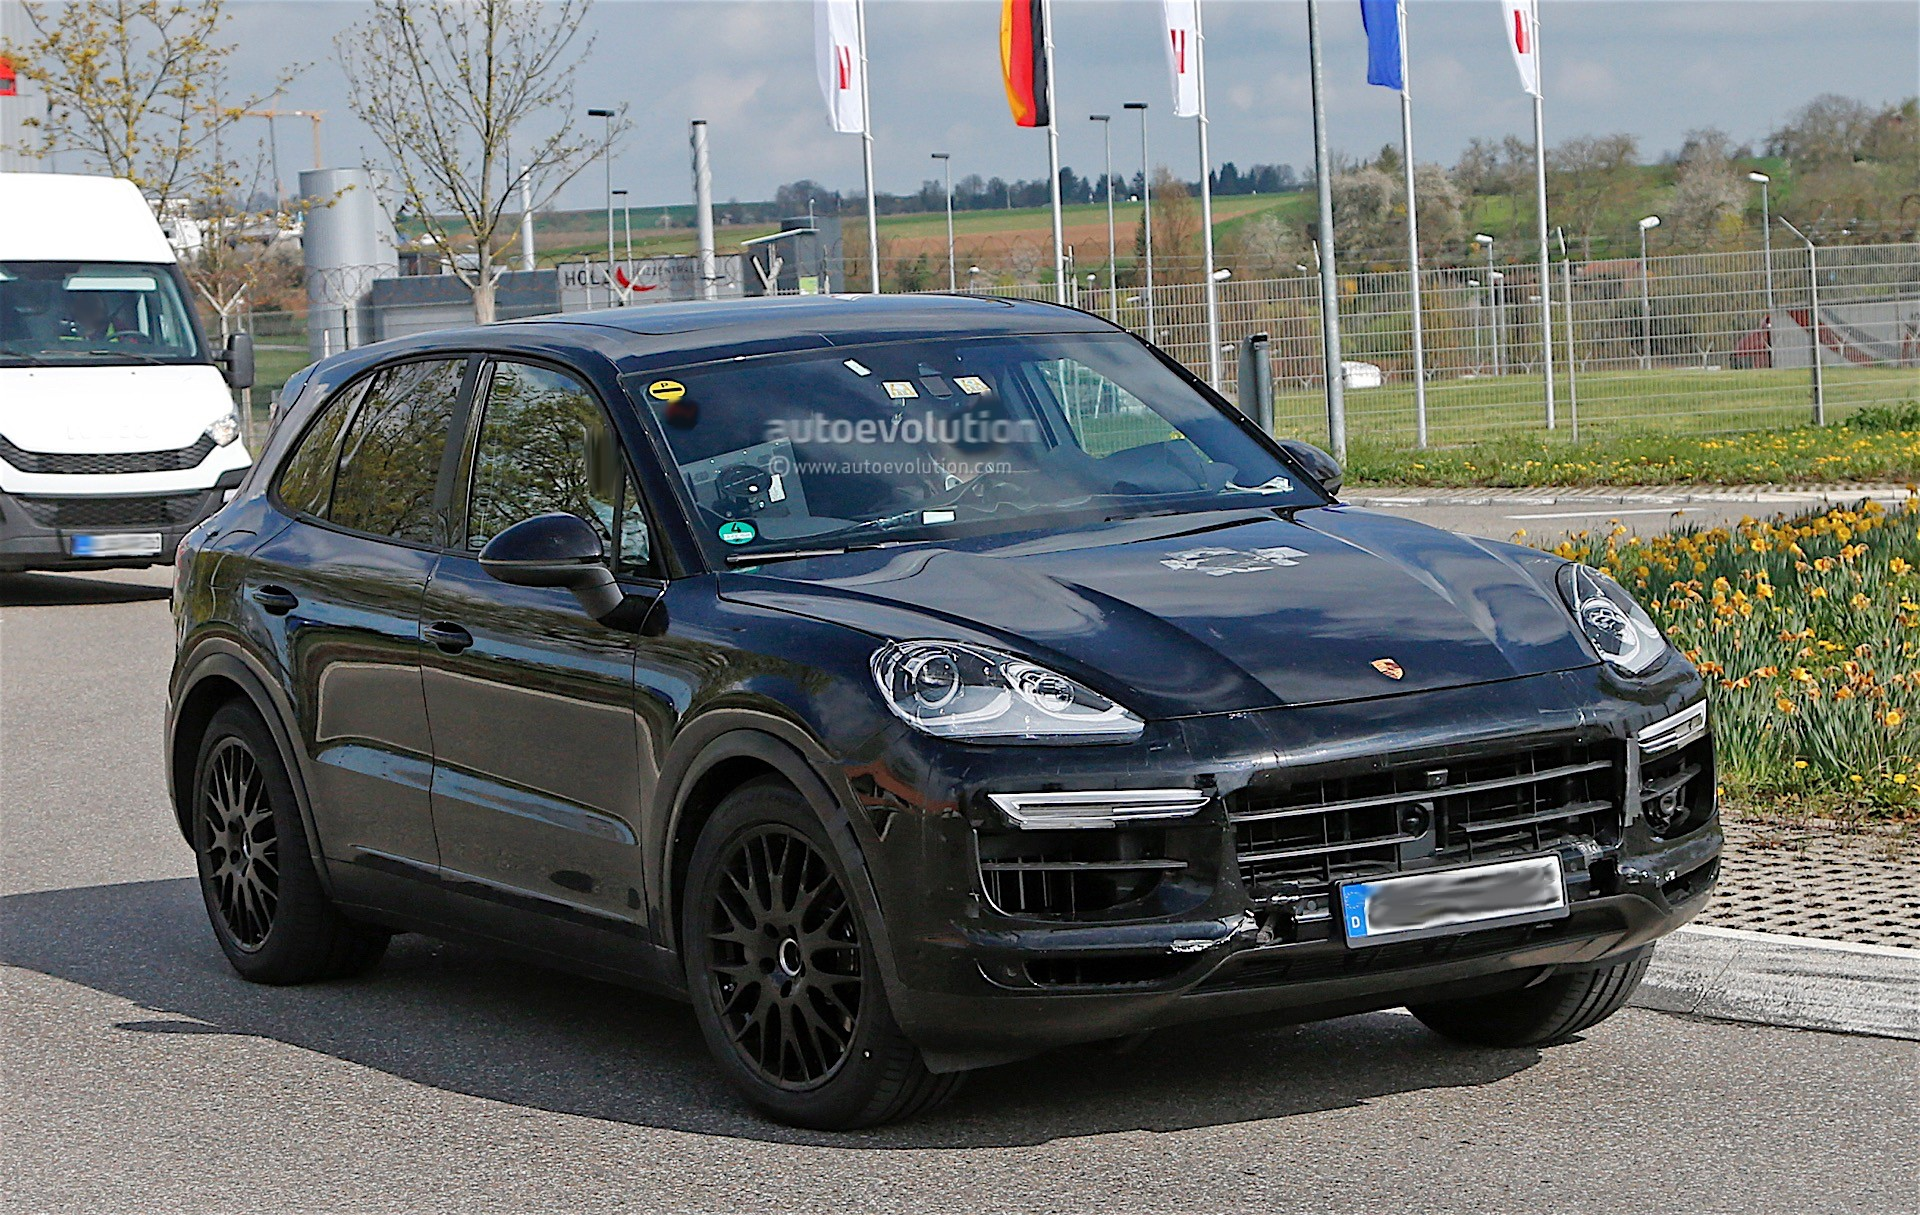 2018 Porsche Cayenne Interior Revealed, Gets Larger ...